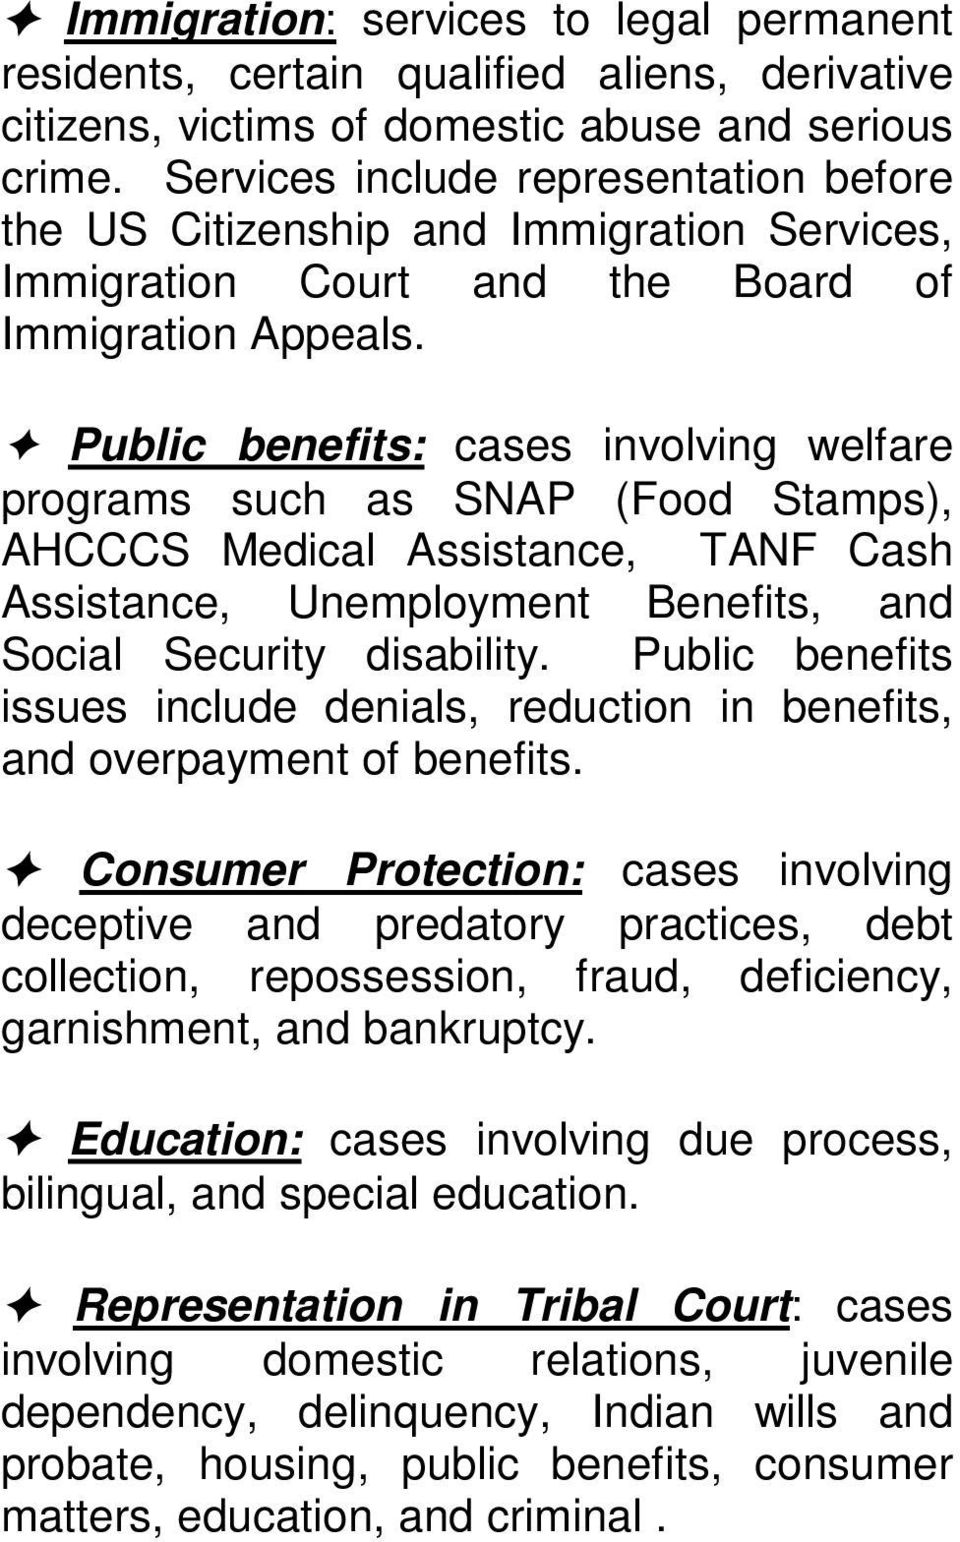 Public benefits: cases involving welfare programs such as SNAP (Food Stamps), AHCCCS Medical Assistance, TANF Cash Assistance, Unemployment Benefits, and Social Security disability.